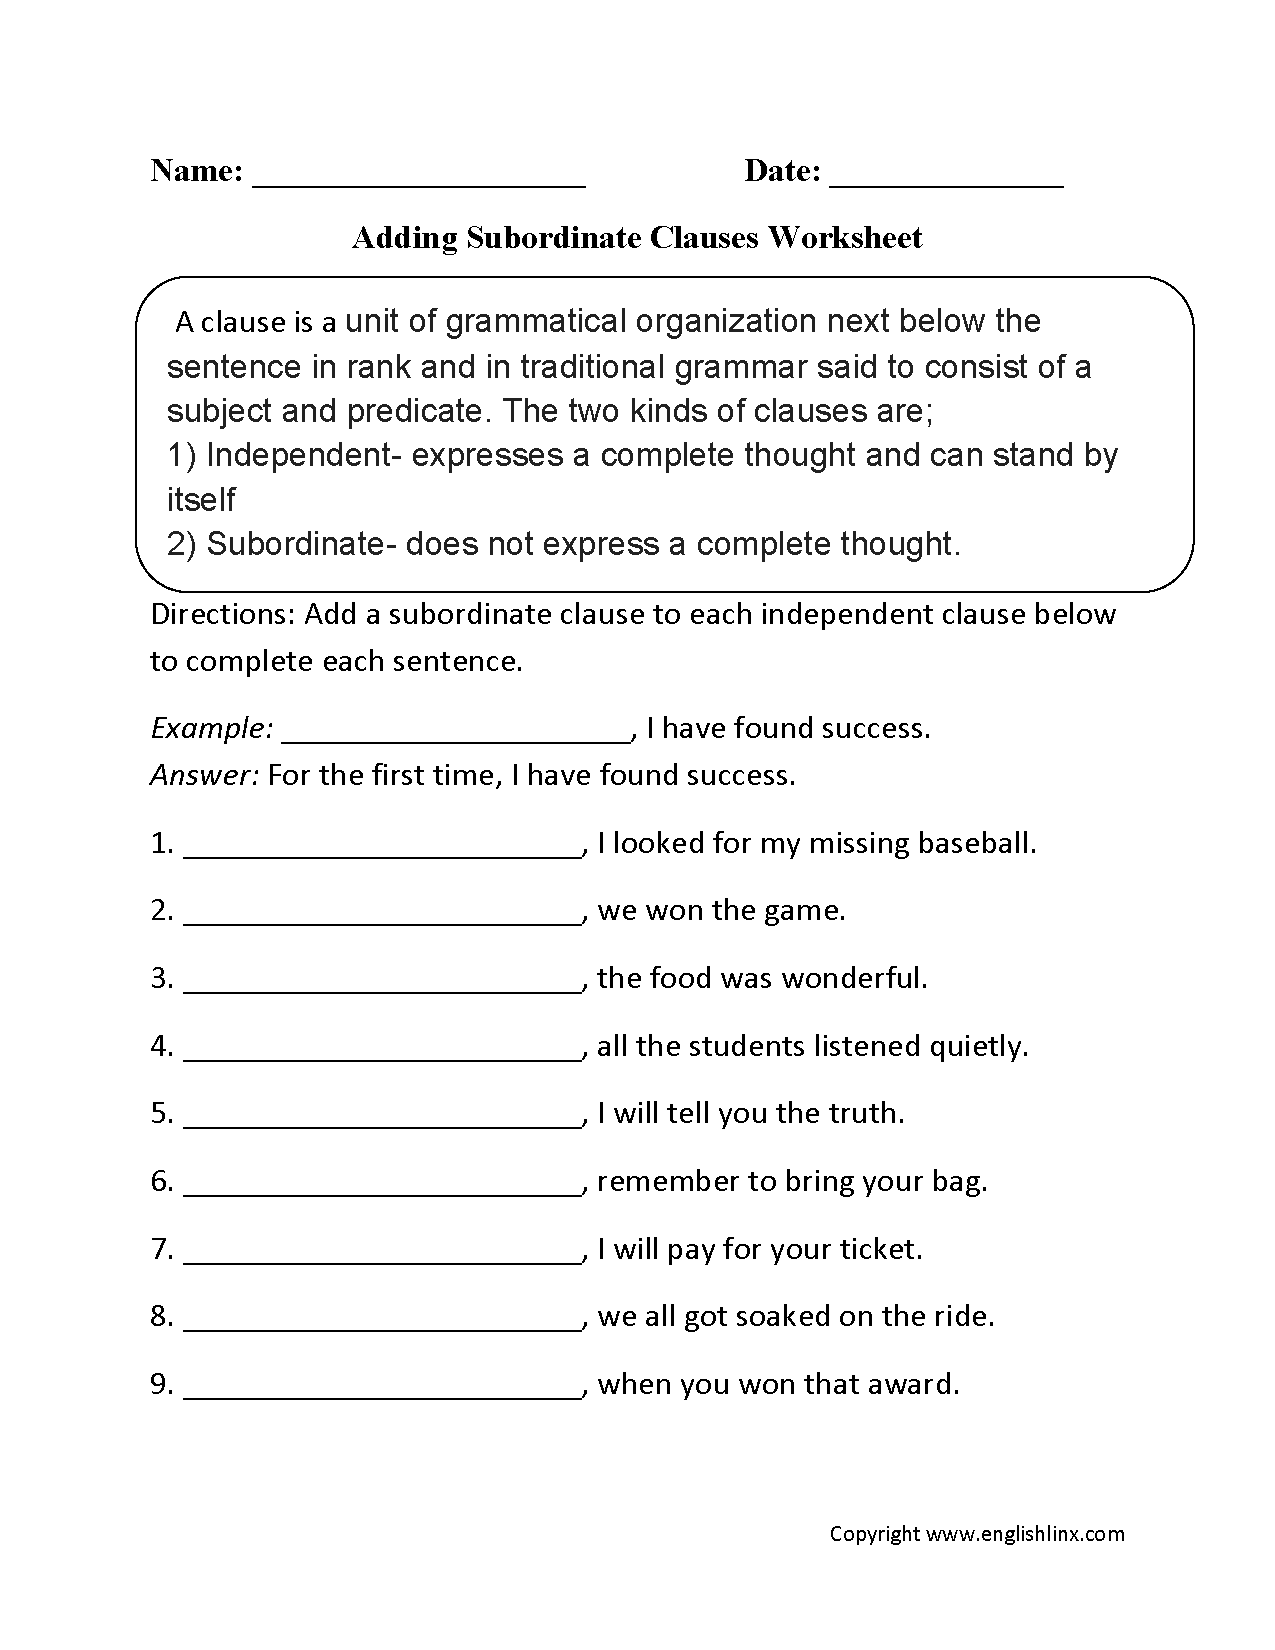 Free Worksheet Independent And Dependent Clauses Worksheets independent dependent clause worksheet delibertad and samsungblueearth